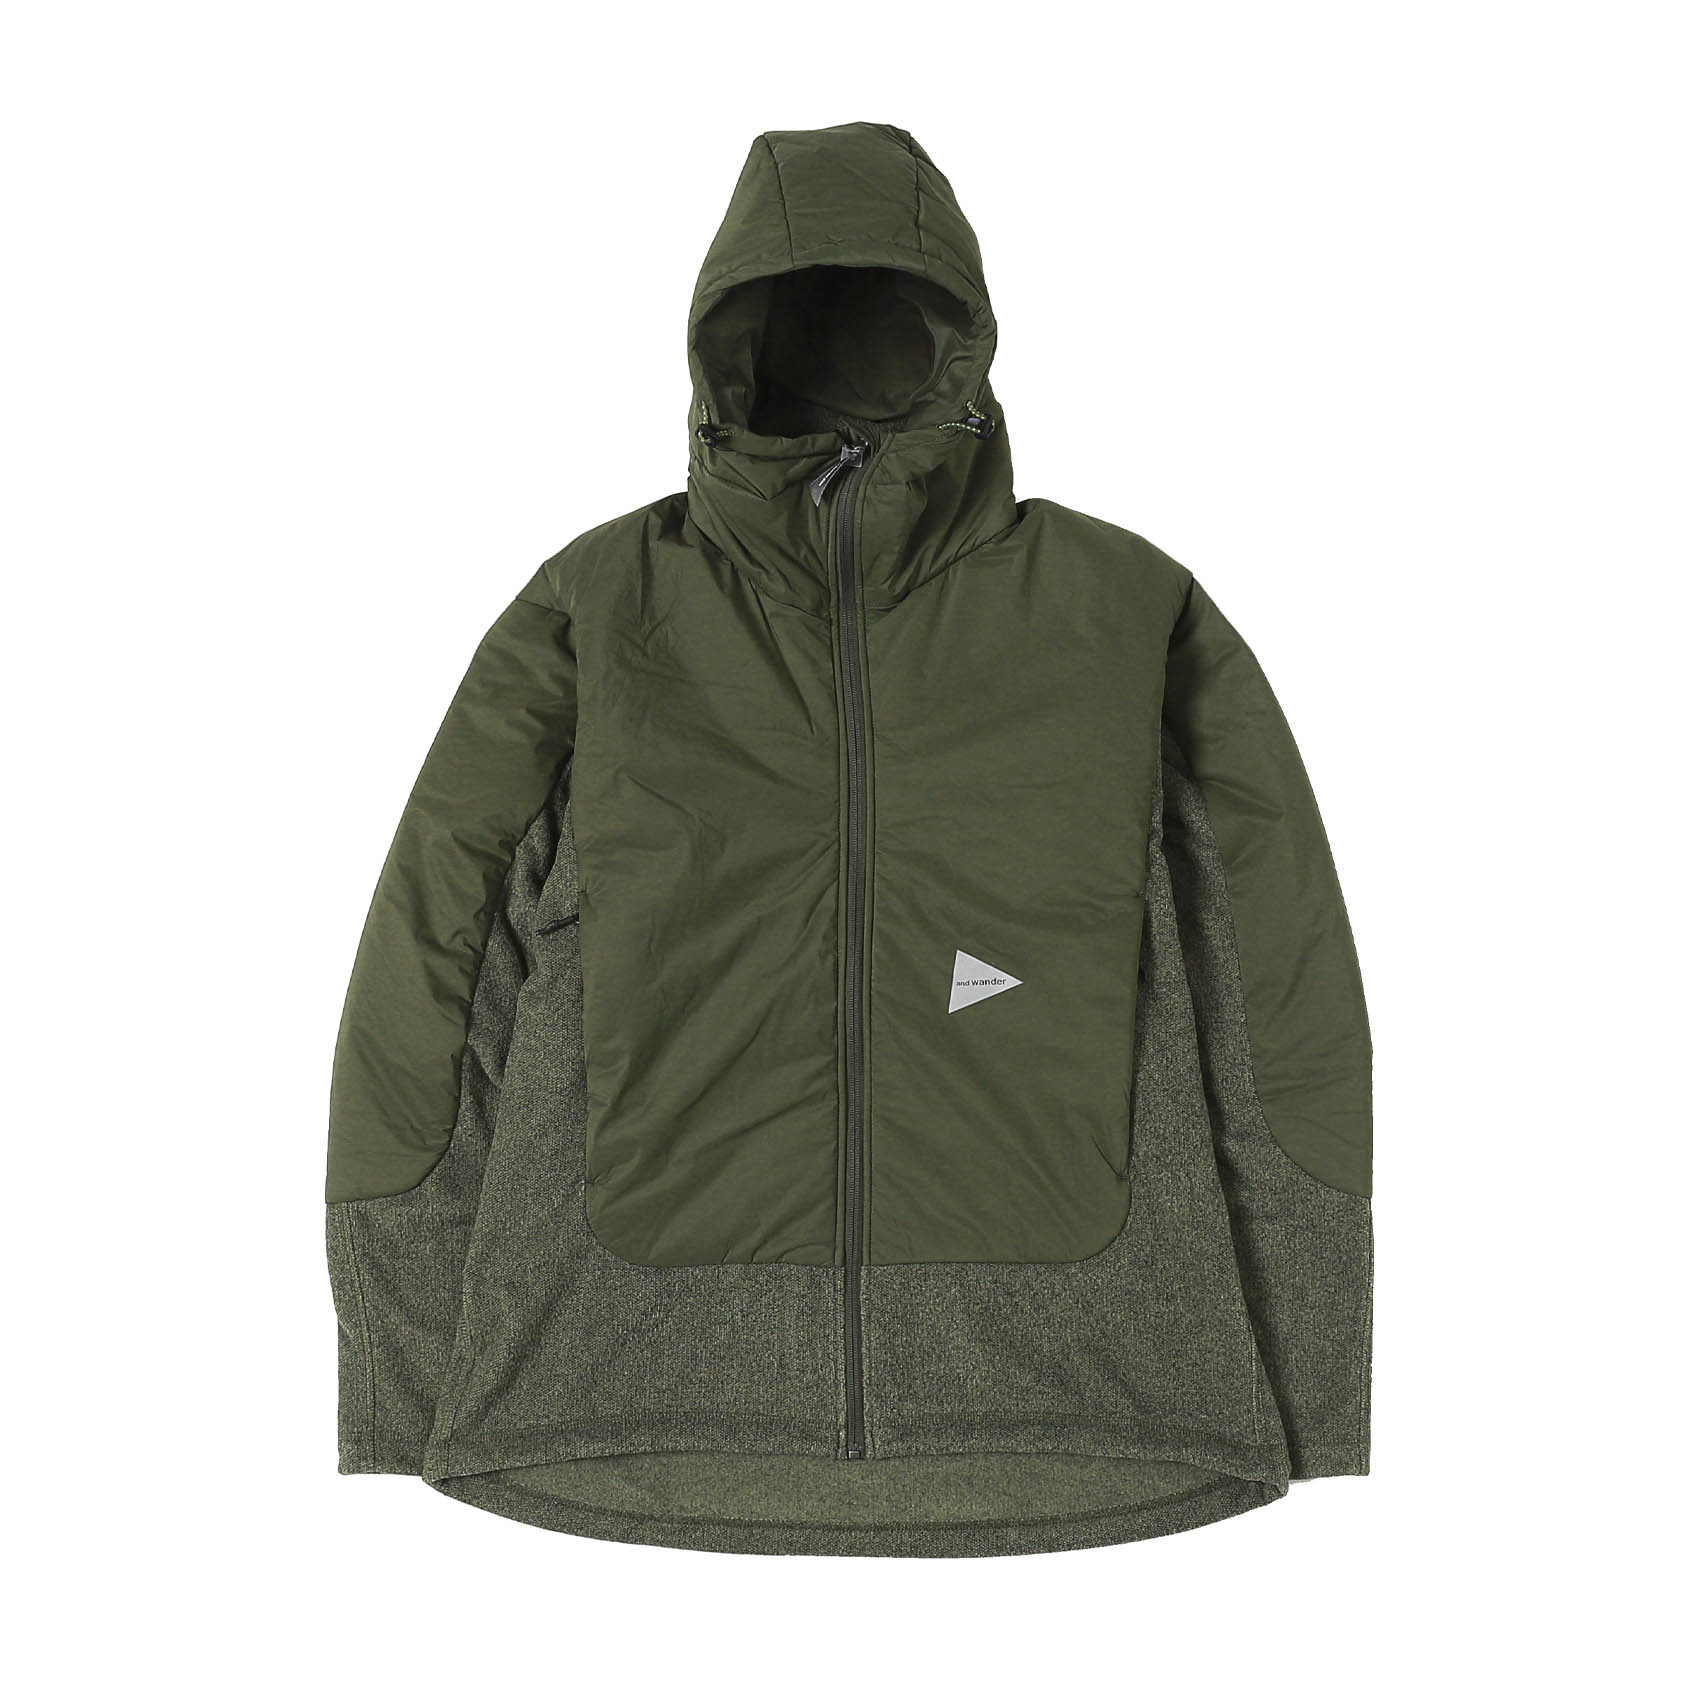 TOP FLEECE JACKET - KHAKI